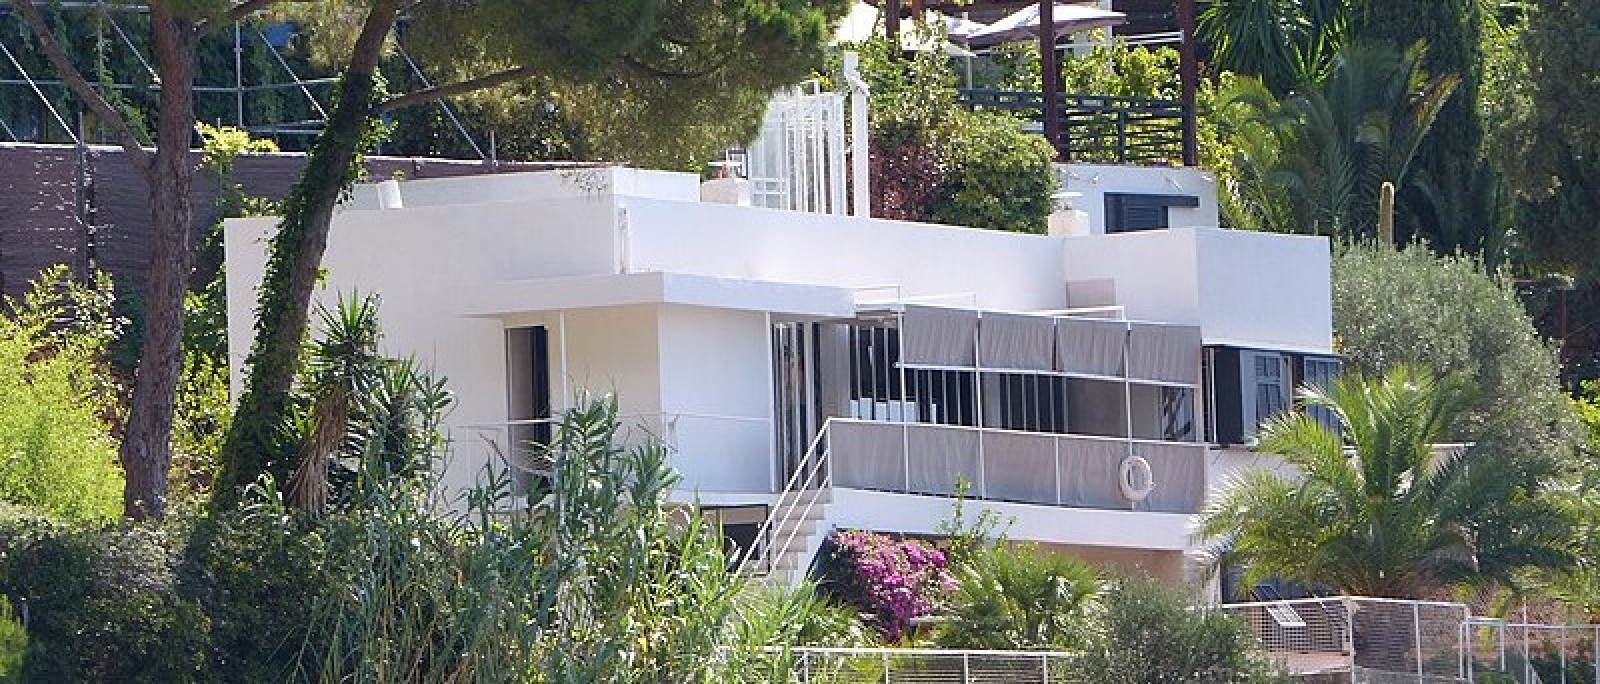 Love, Jealousy and Death at the E-1027 House in Cap-Martin